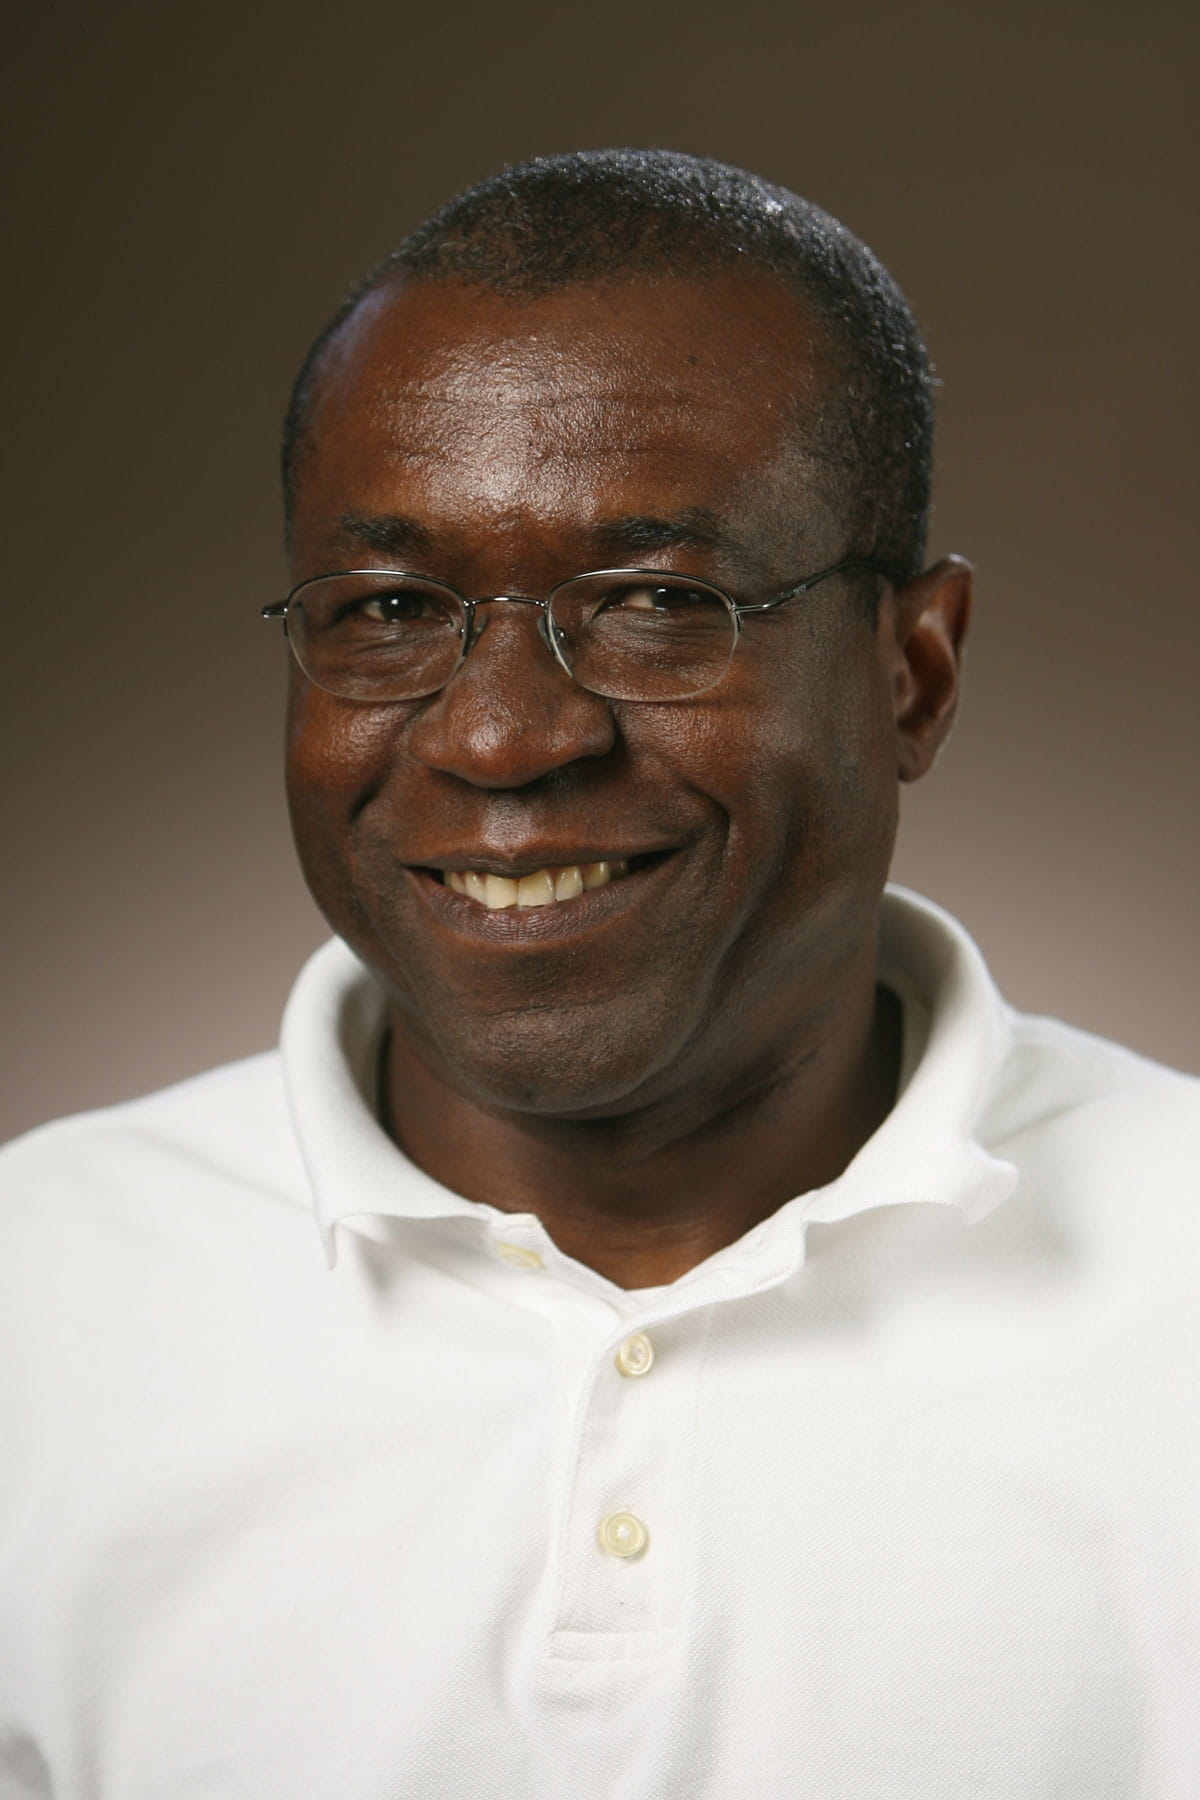 A photo of Henry Akinbi.